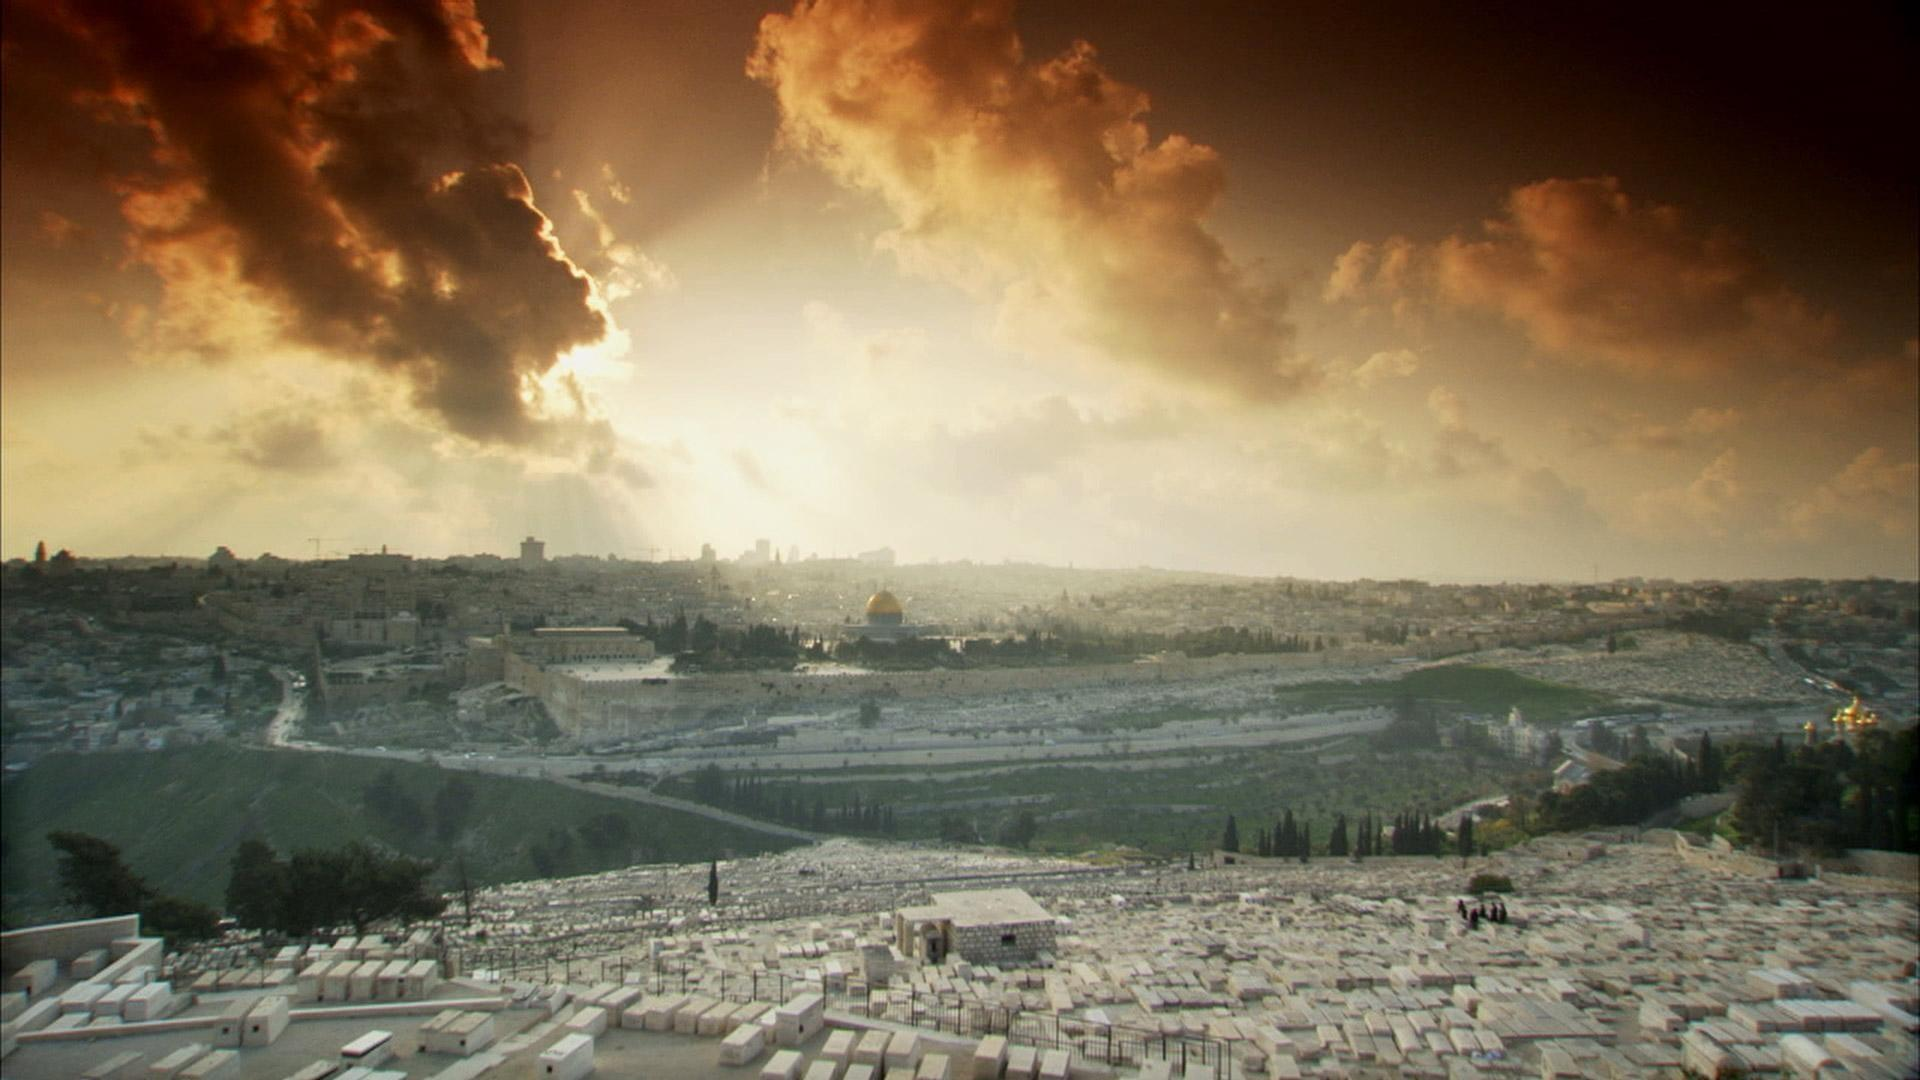 jerusalem center of the world Directed by andrew goldberg the history of the city of jerusalem is told from it's beginning as a cannanite city that abraham was led to by god up to the modern day.